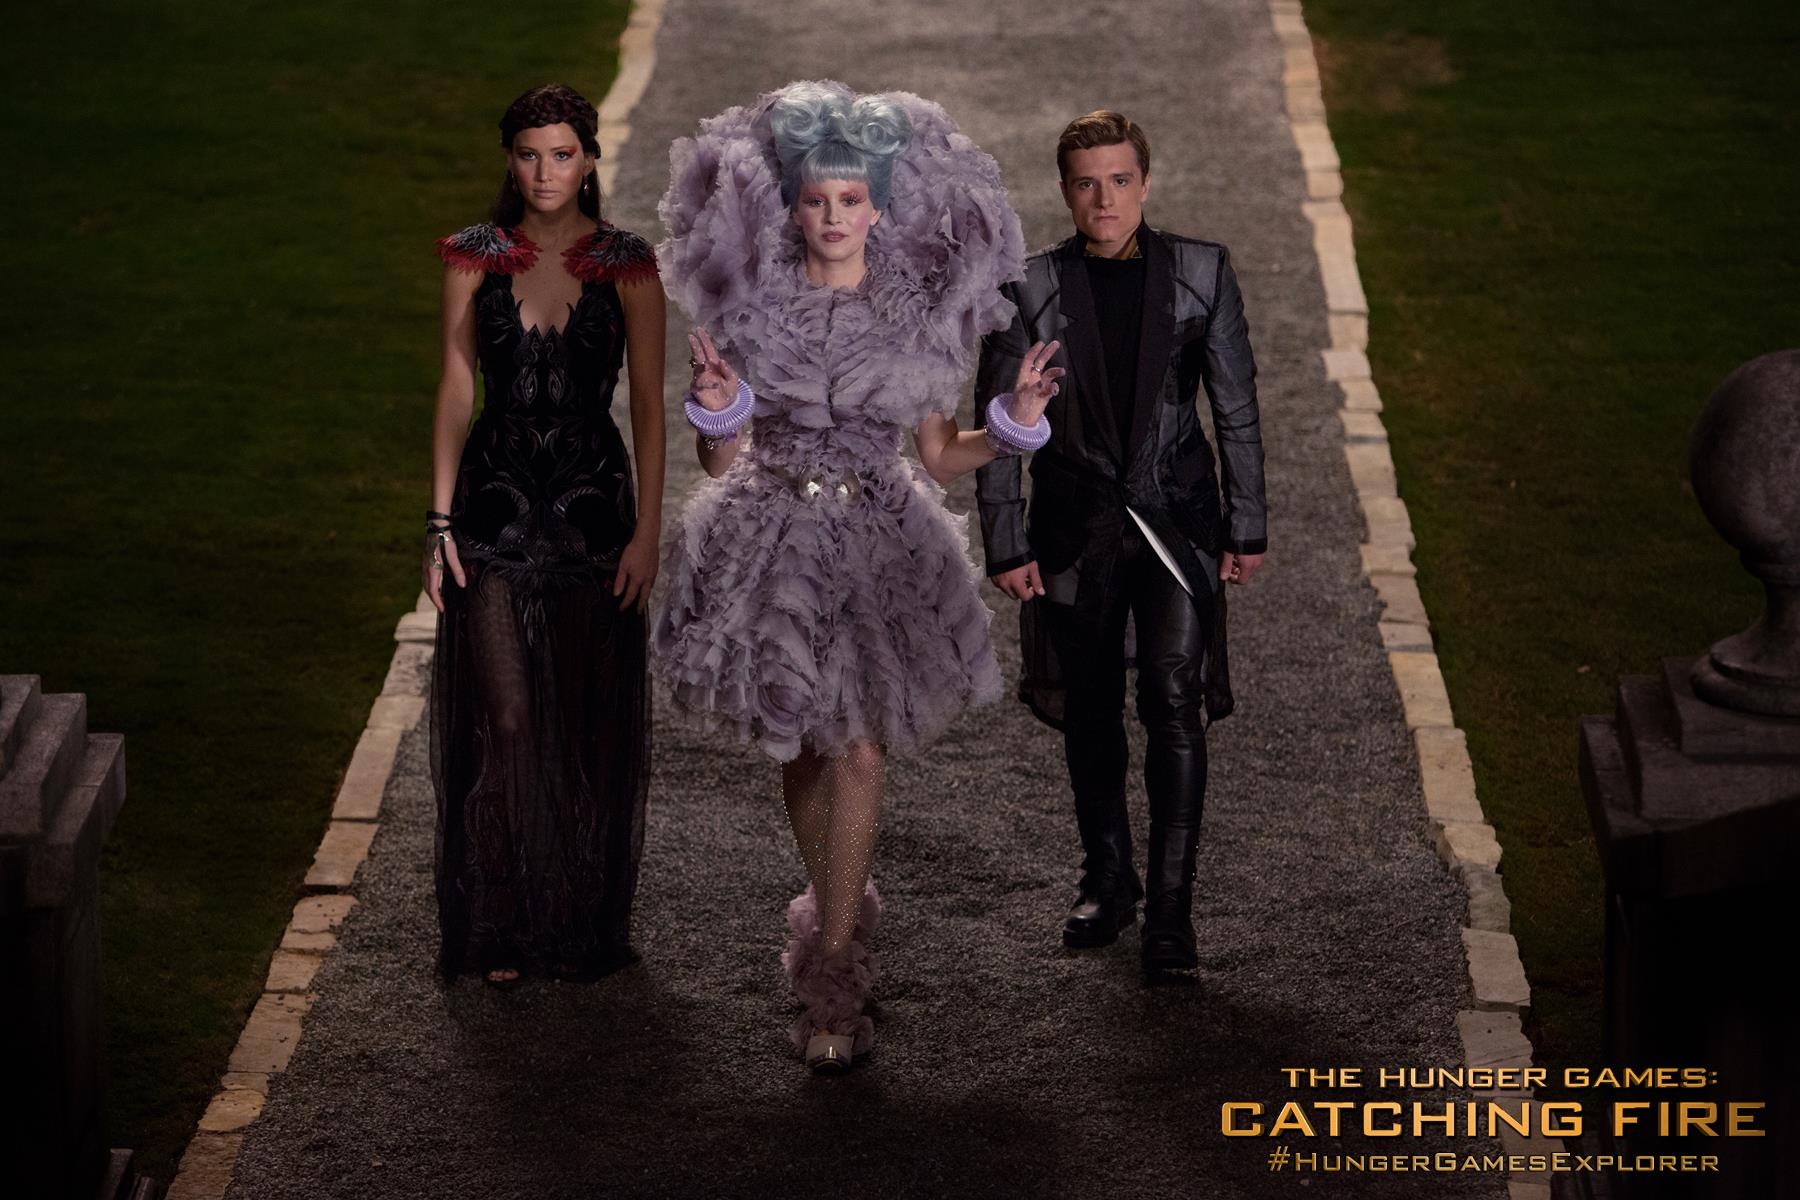 The Hunger Games Catching Fire 2013 Ccpopculture